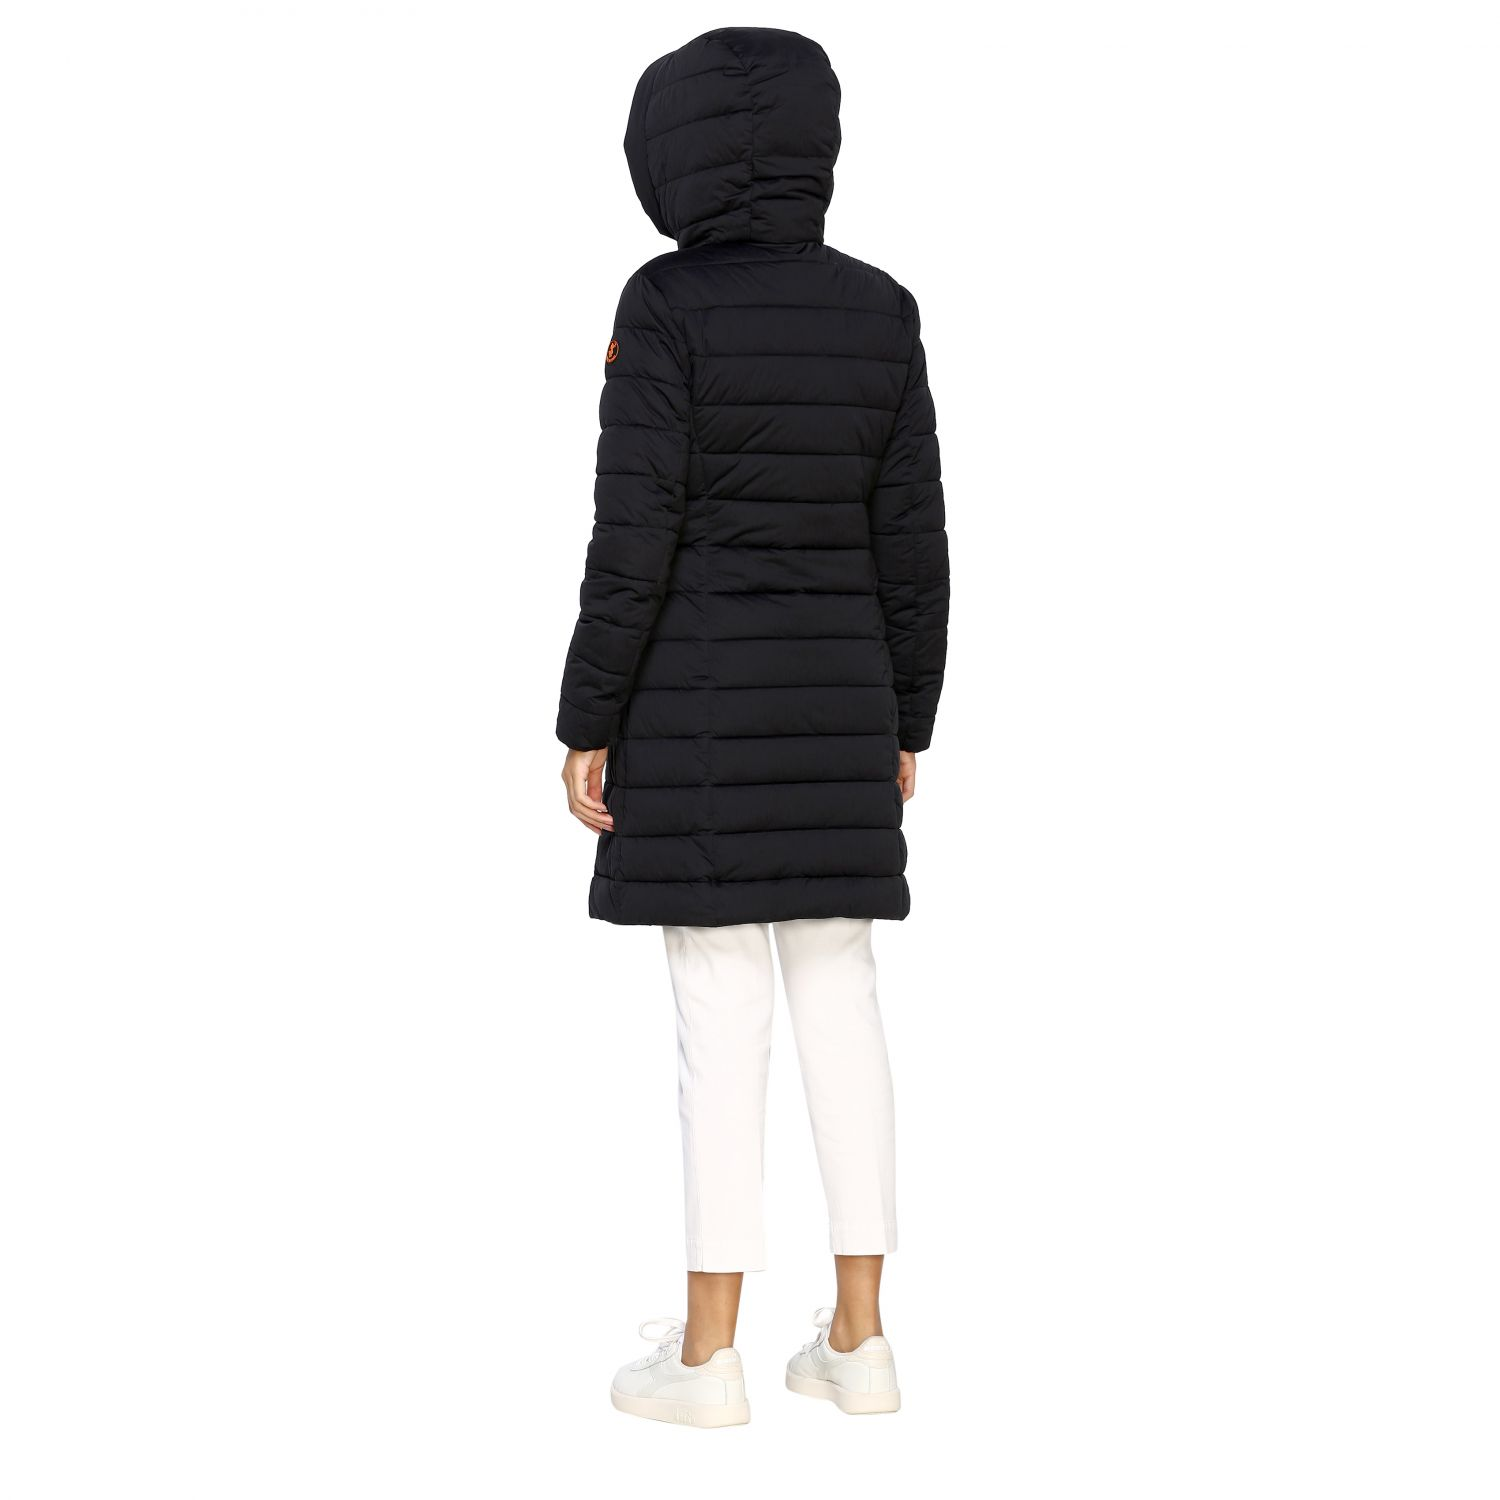 Chaqueta Save The Duck: Chaqueta mujer Save The Duck negro 2